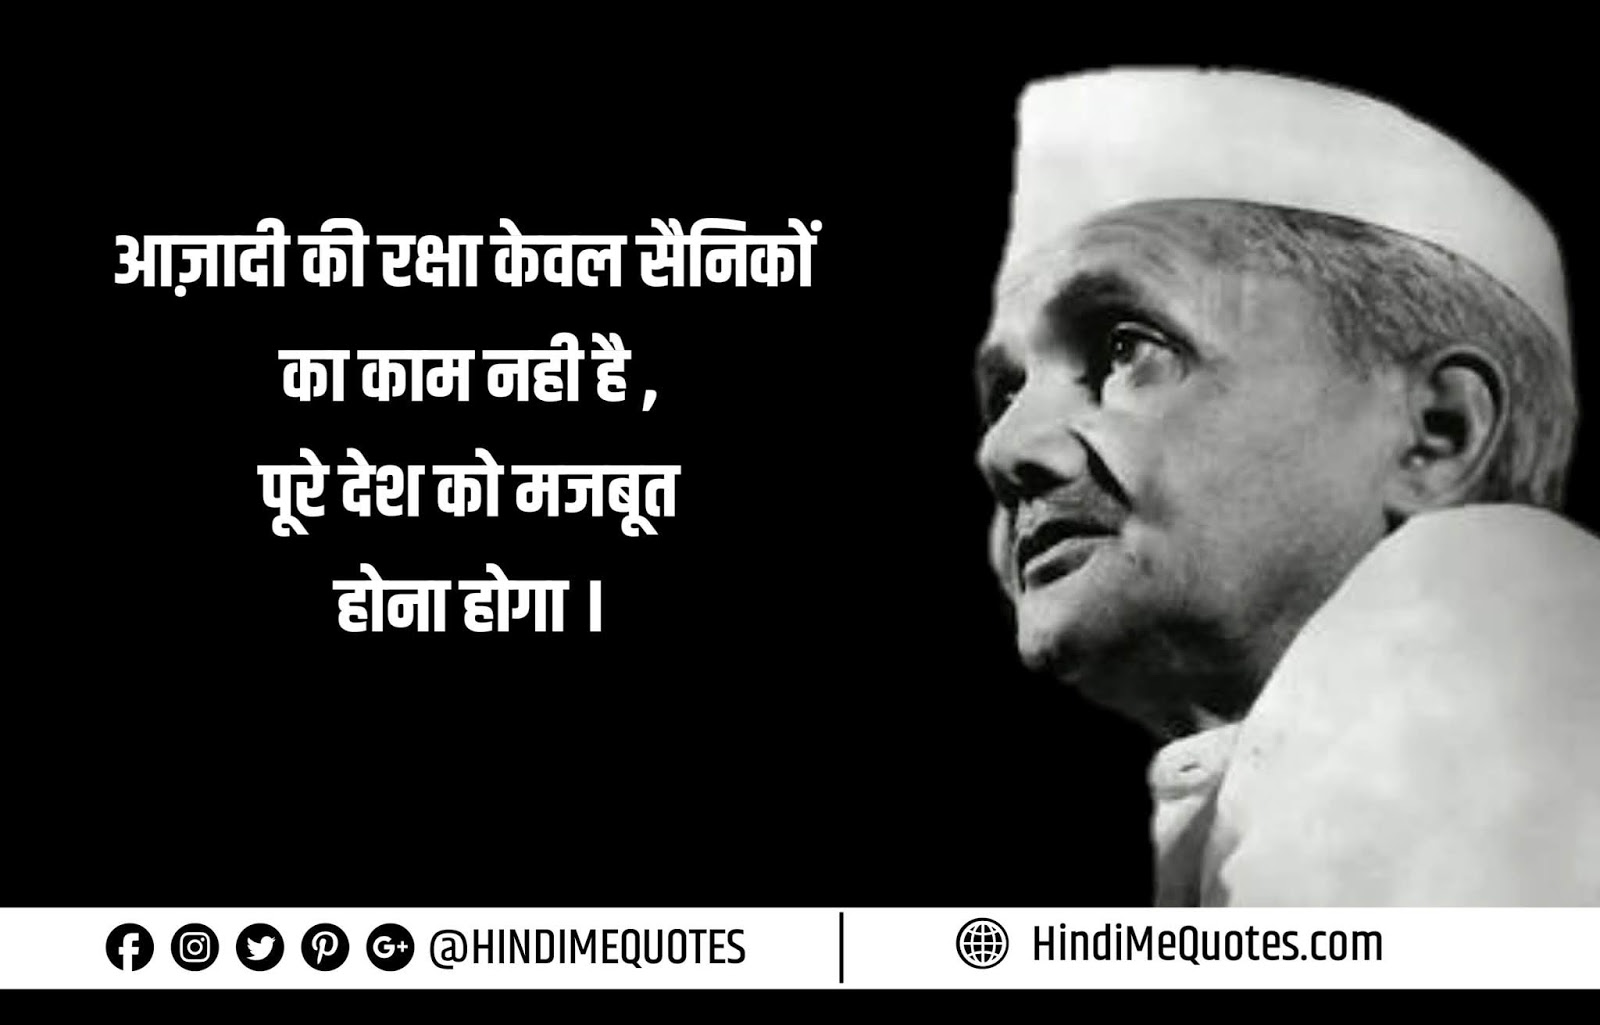 Lal-bahadur-quotes